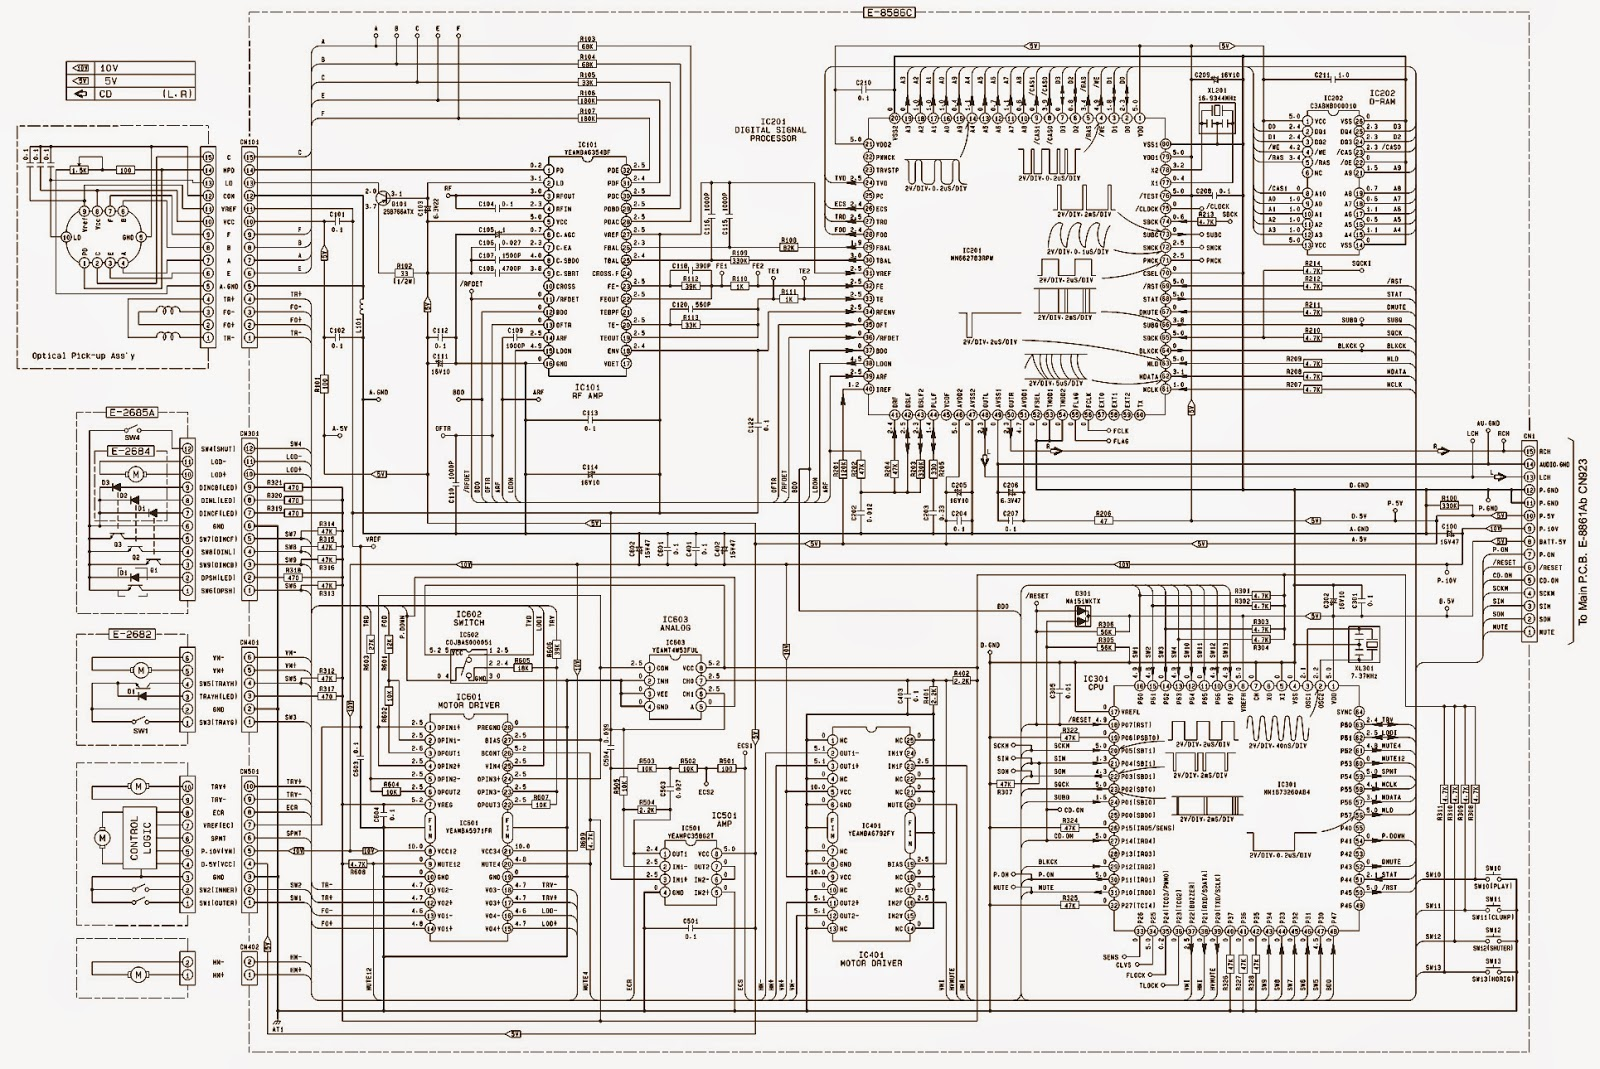 Cq eh9160a panasonic car audio system alignment schematic cq eh9160a panasonic car audio system alignment schematic ccuart Image collections